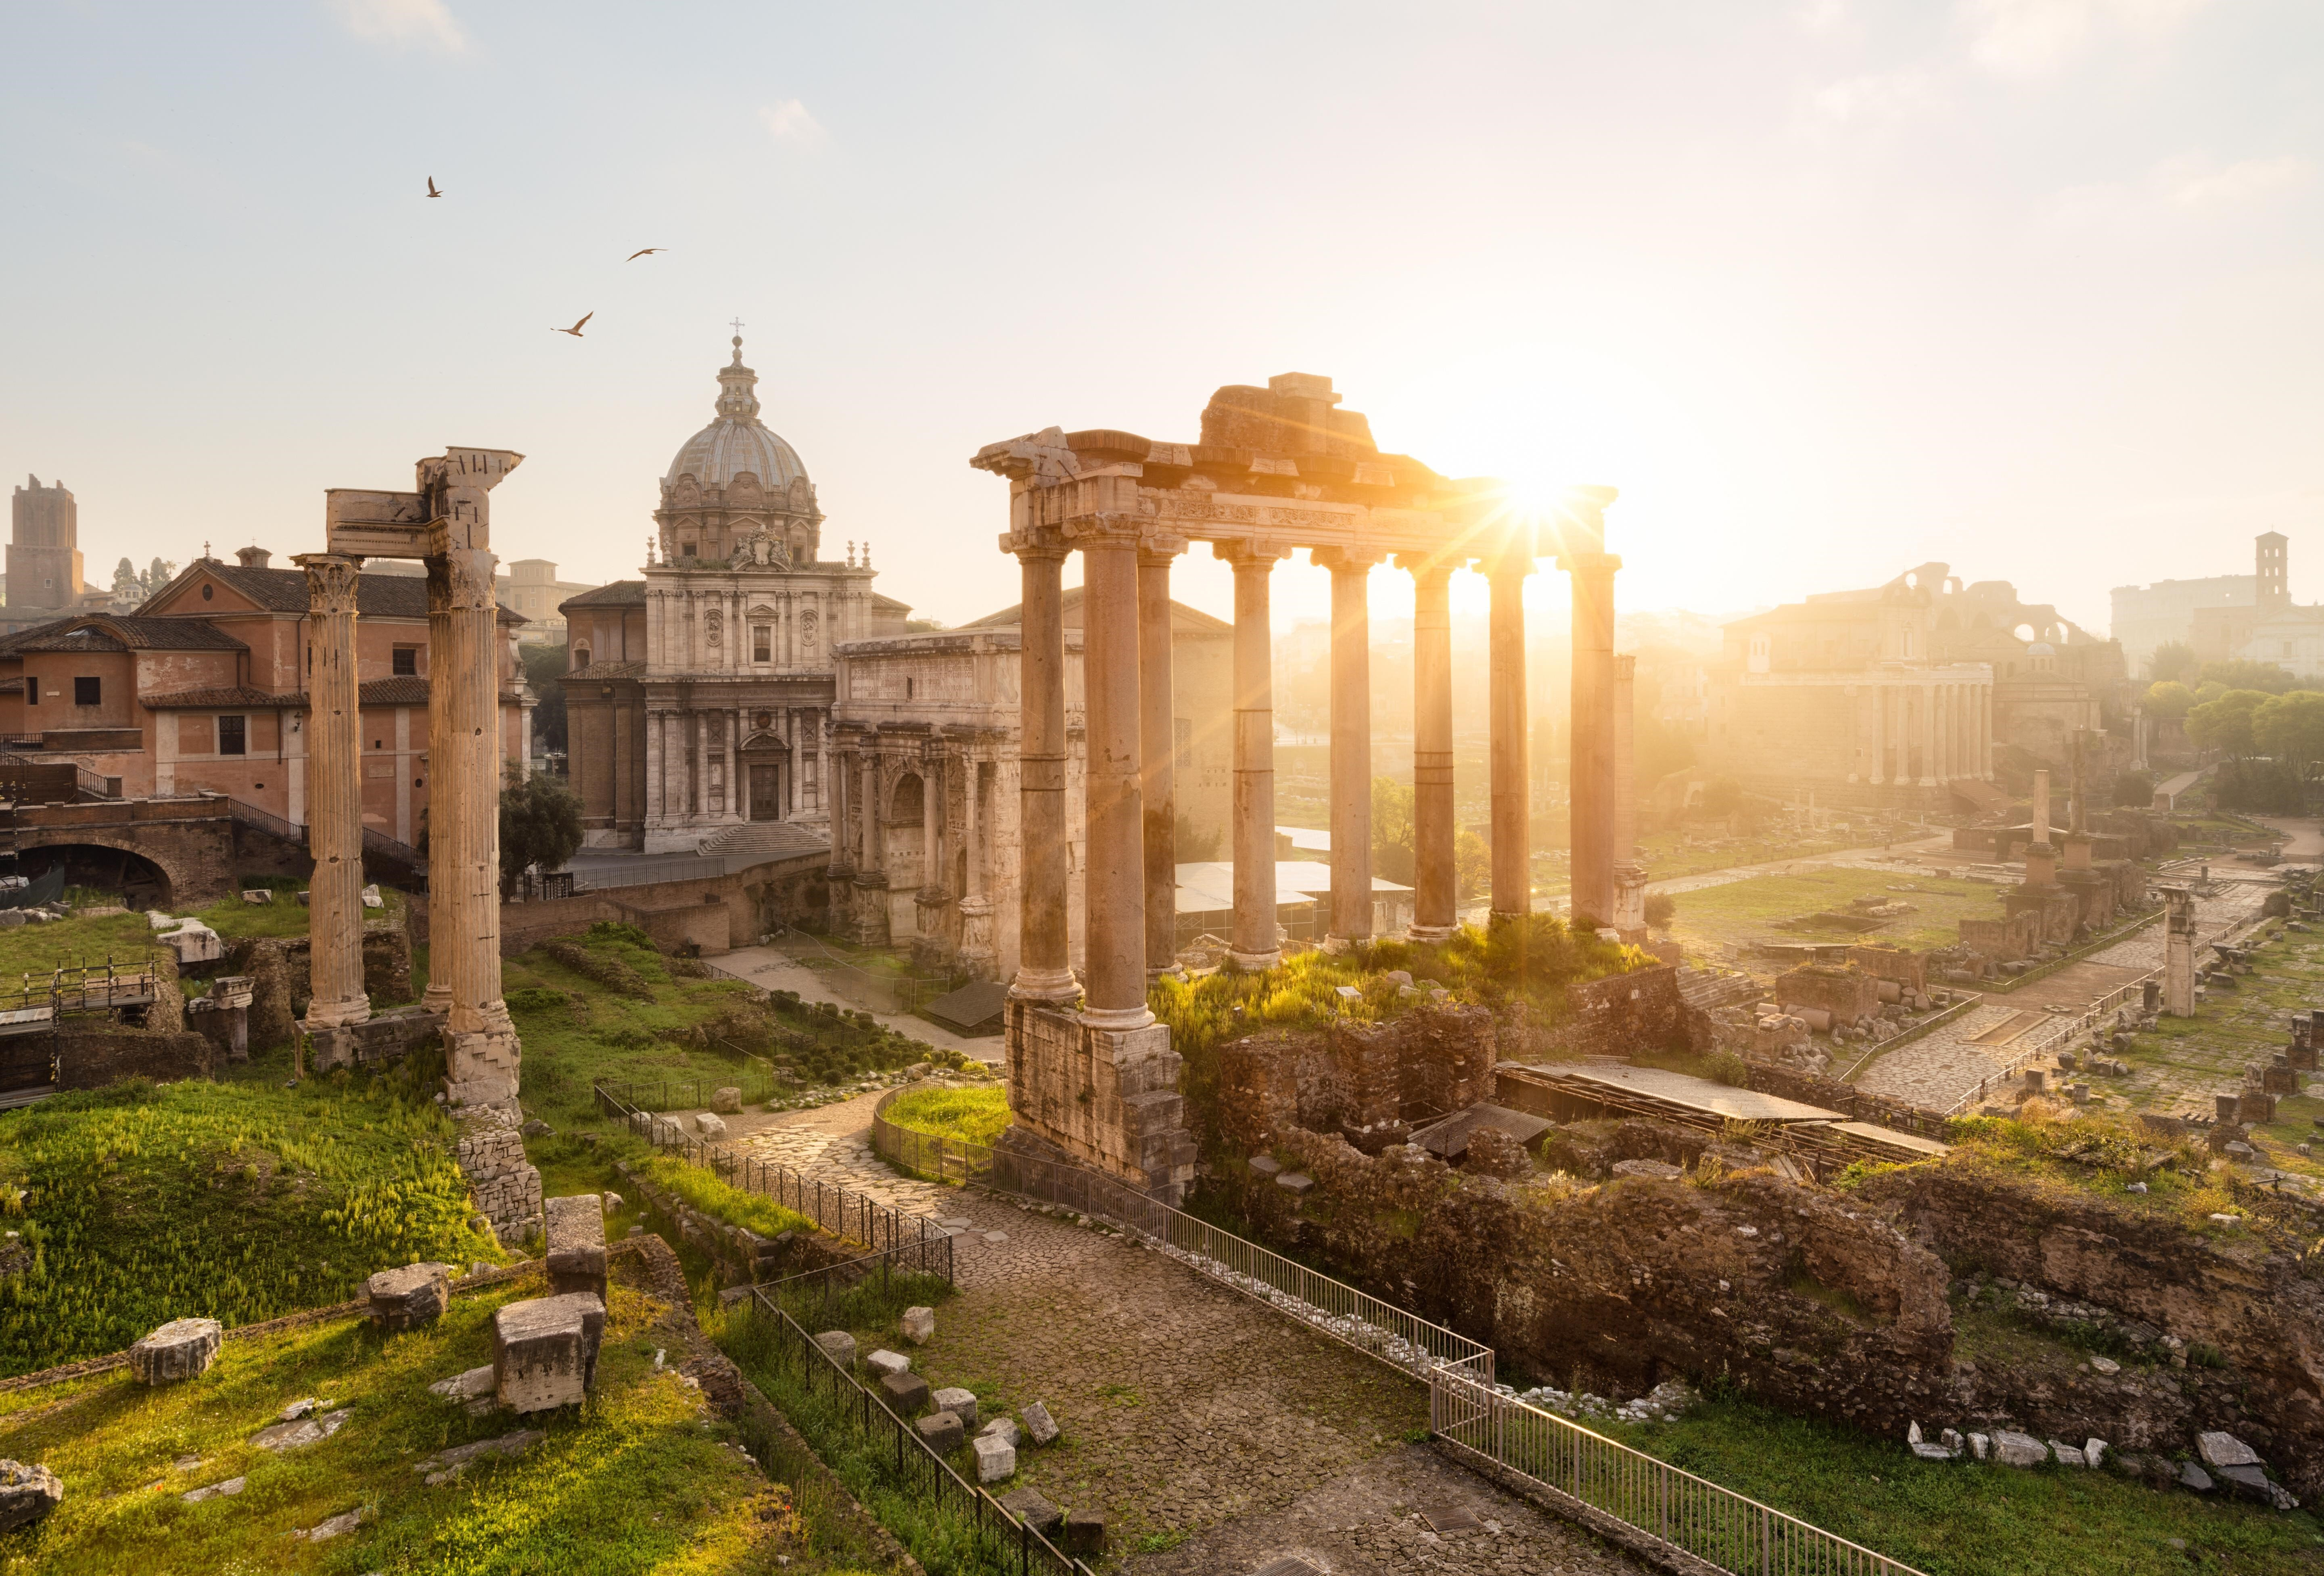 Roman Forum Historical Place In Rome Italy 5k Wallpaper Hd